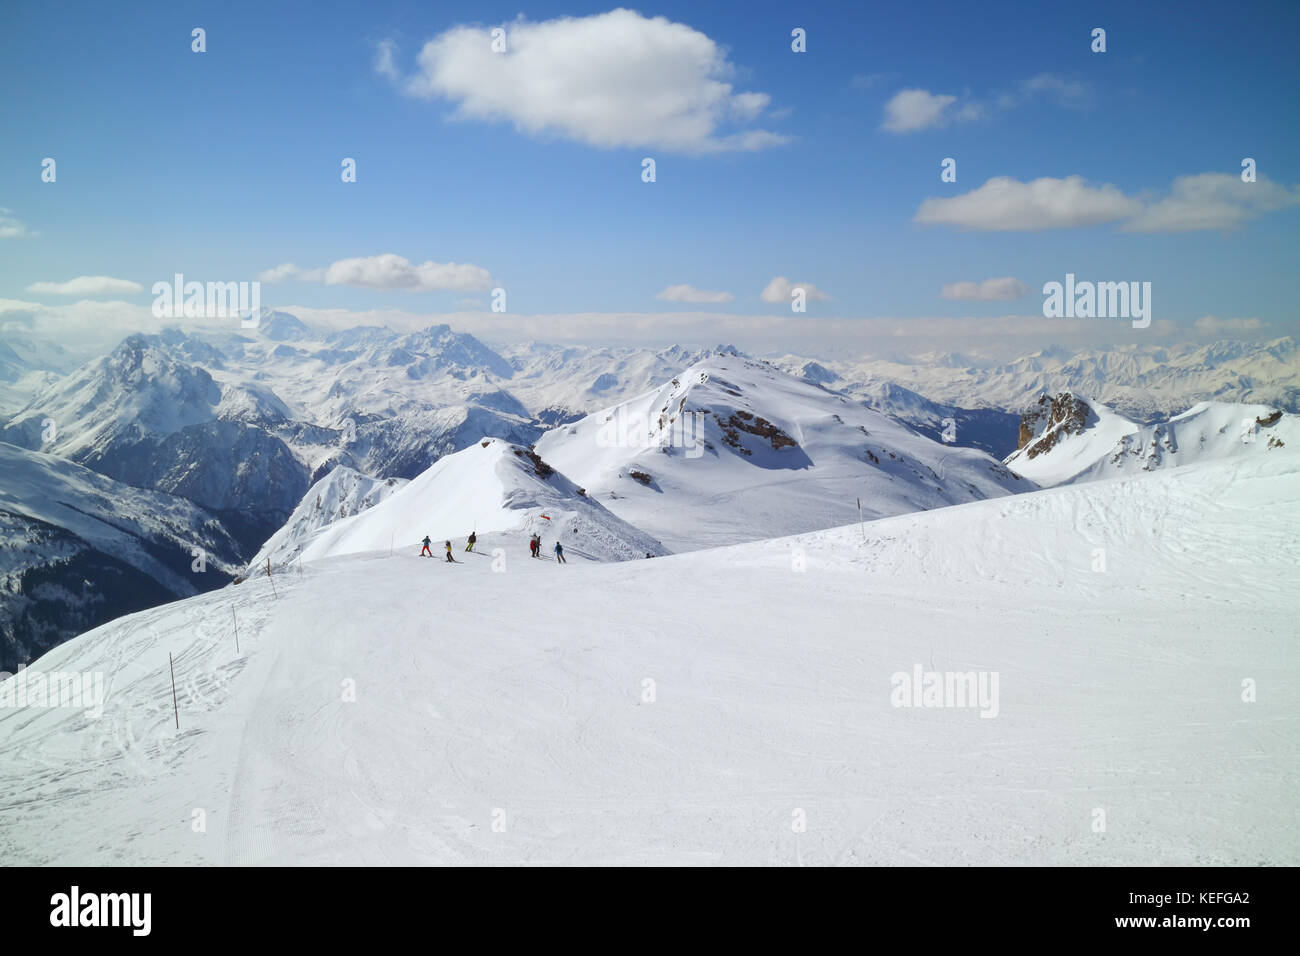 Skiing piste on top of alpine mountain, La Plagne, France - Stock Image